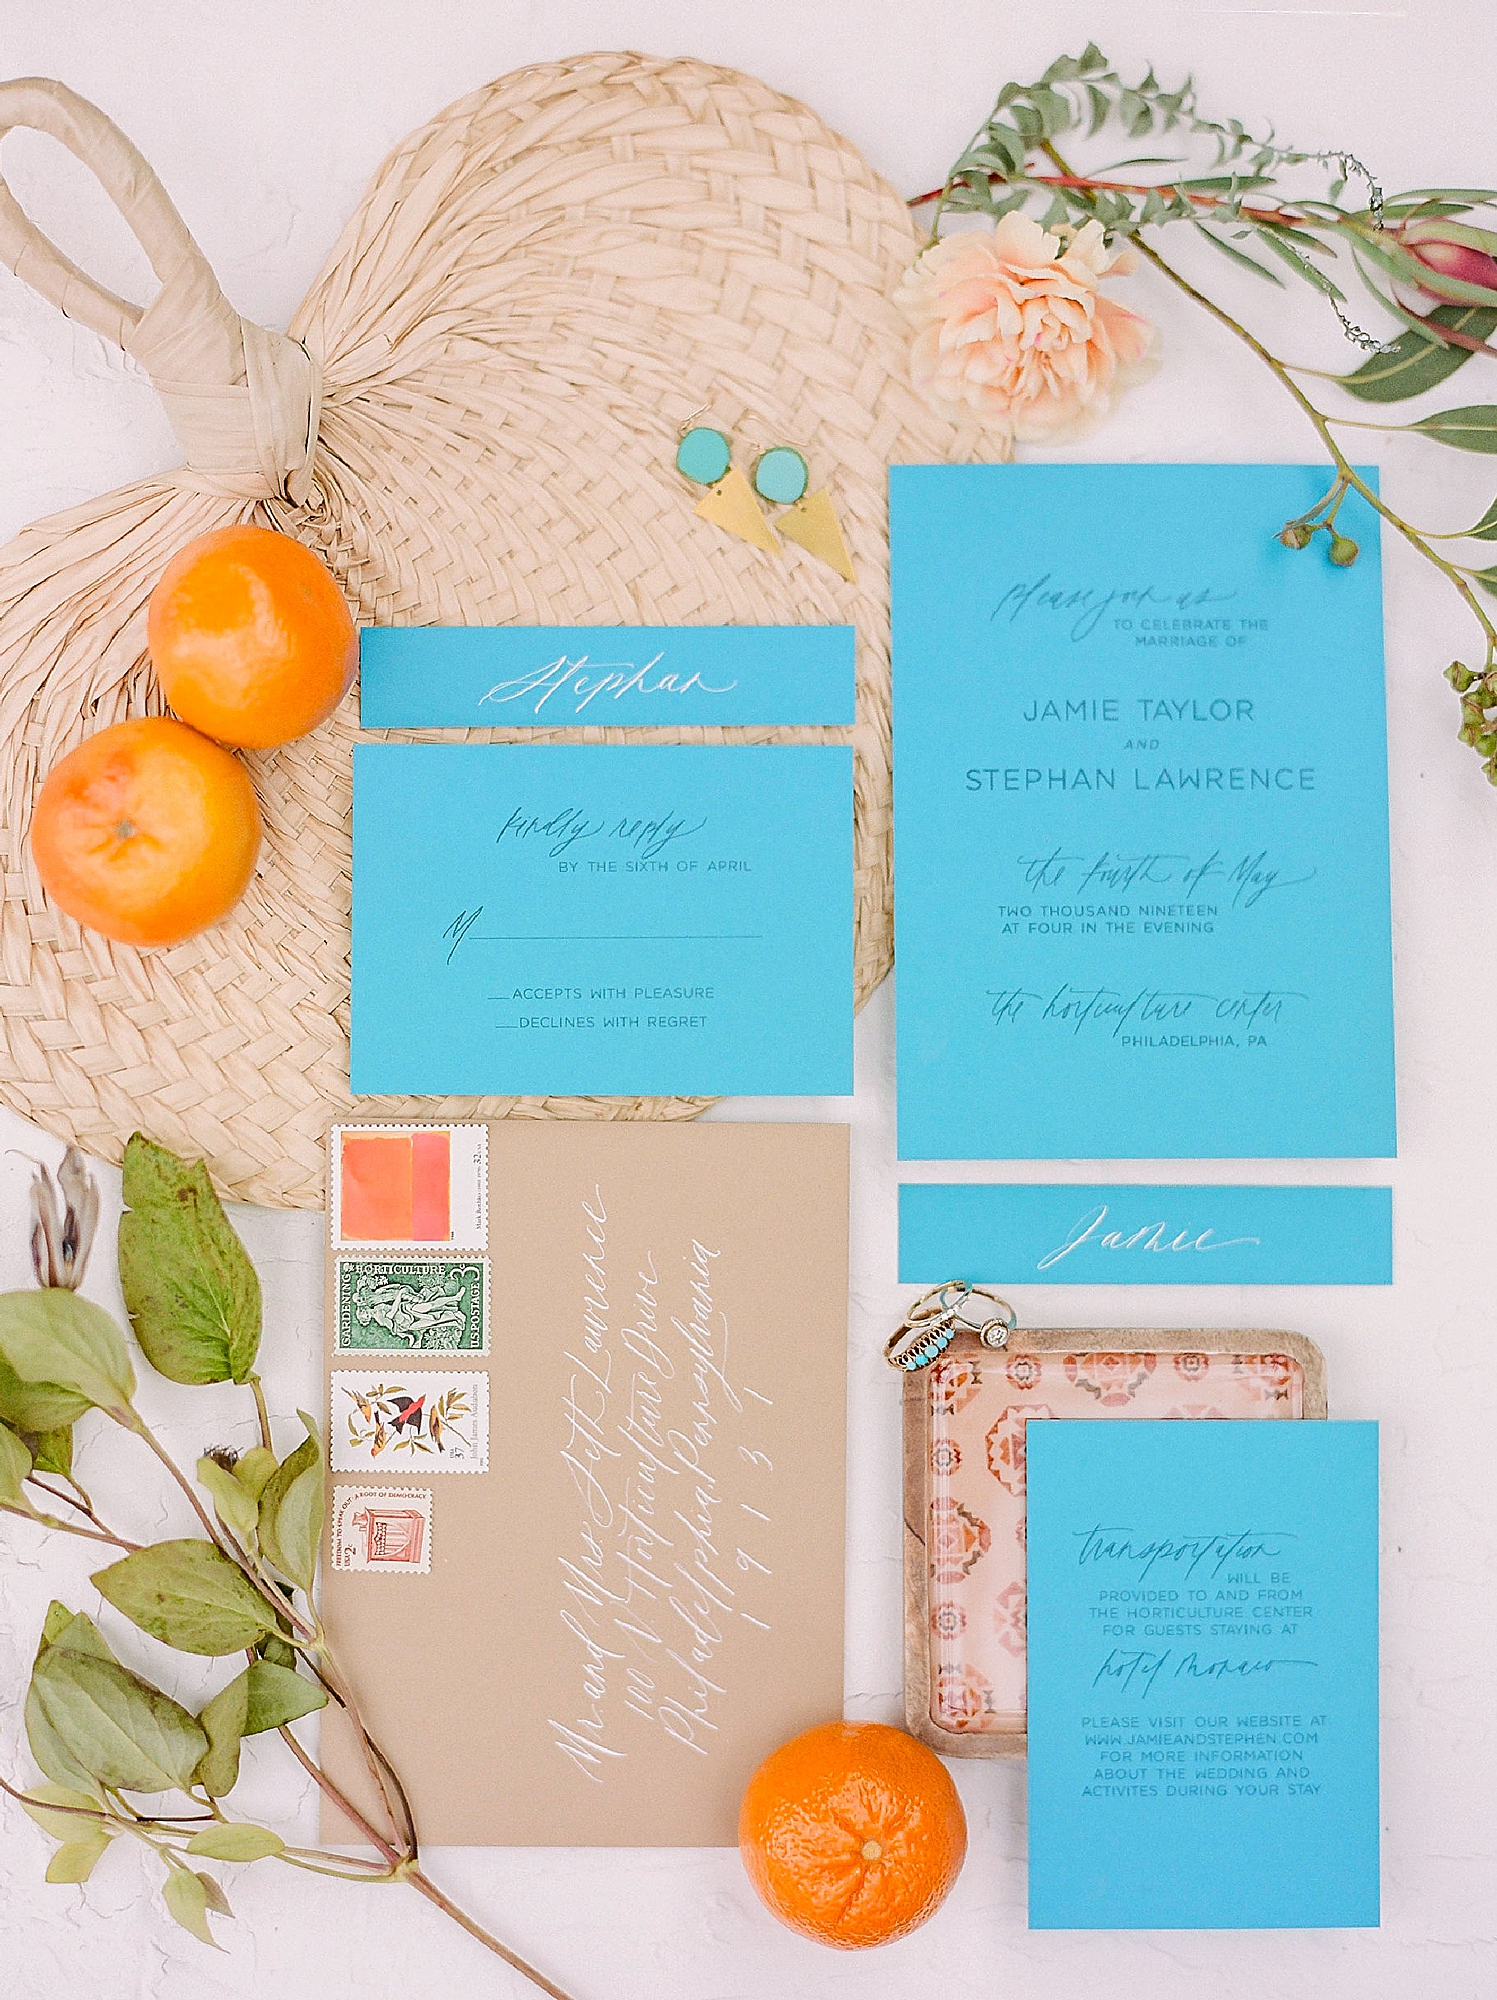 Colorful and Vibrant Wedding Photography at Fairmount Horticultural Center by Magdalena Studios 0001